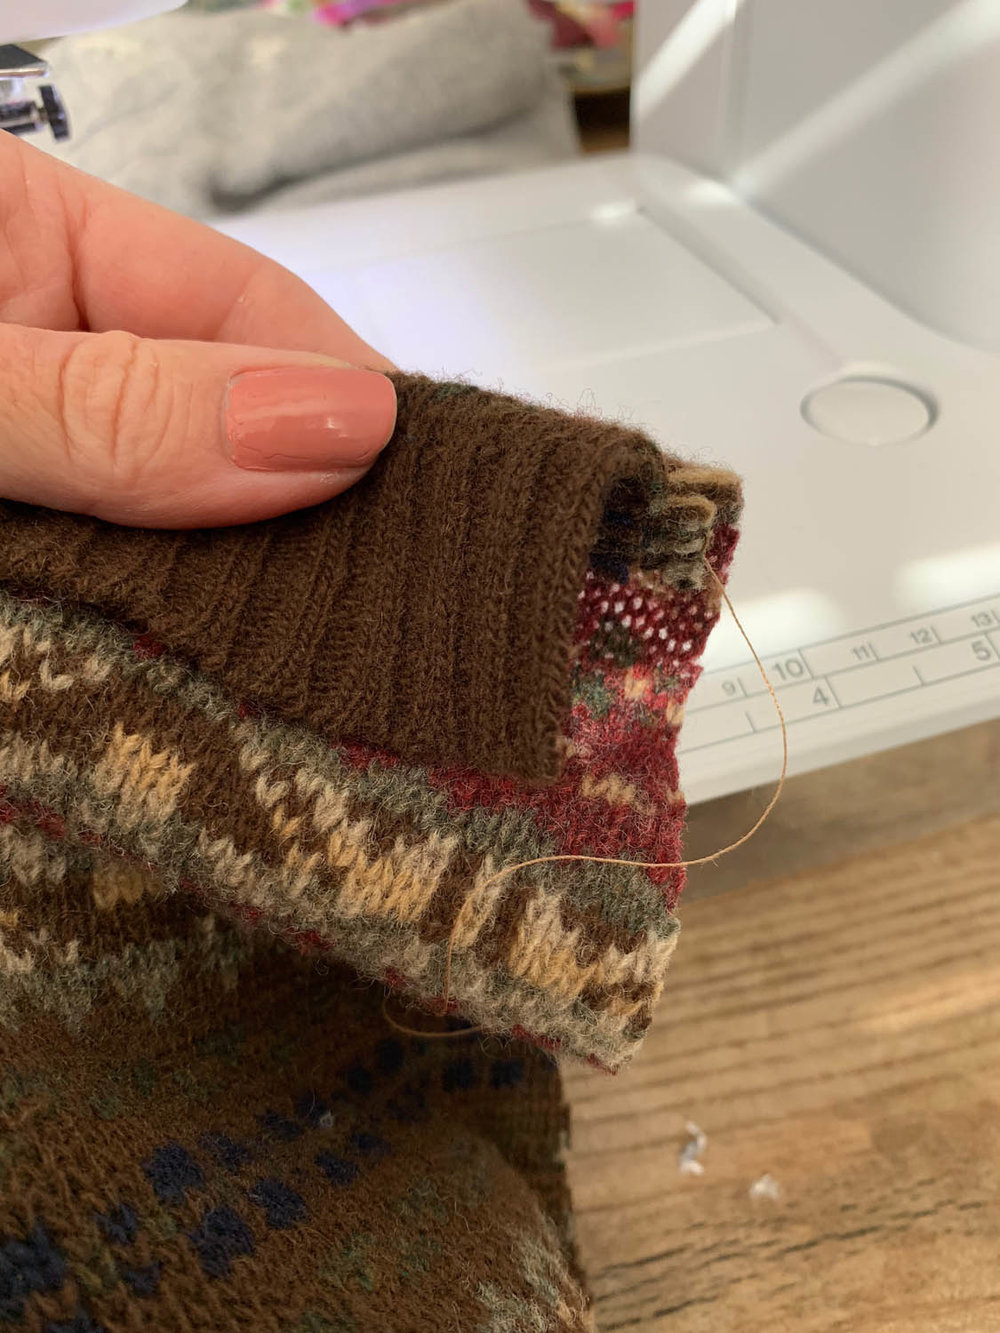 turning cuff of sweater to show front edge of stocking